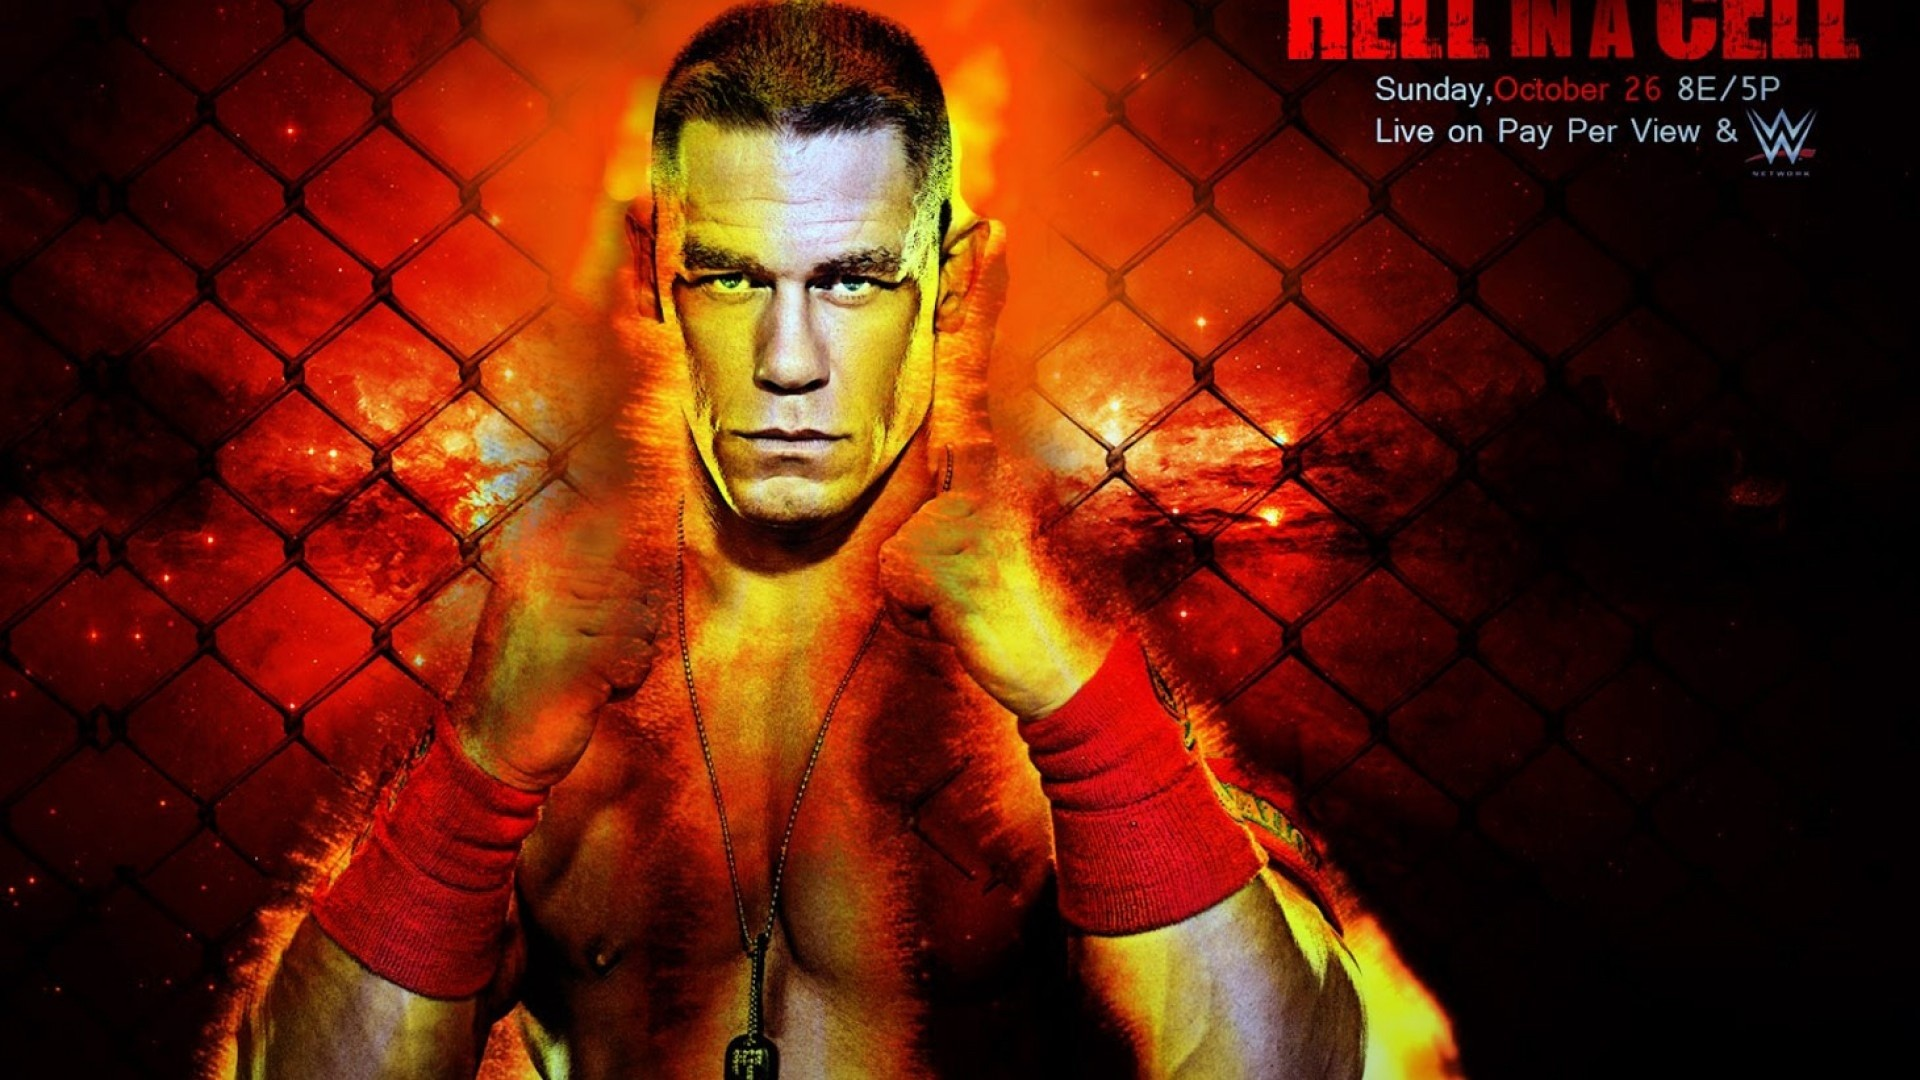 1920x1080 2014, Wwe, Wwf, Wrestling, John Cena, Hell In A Cell 2014